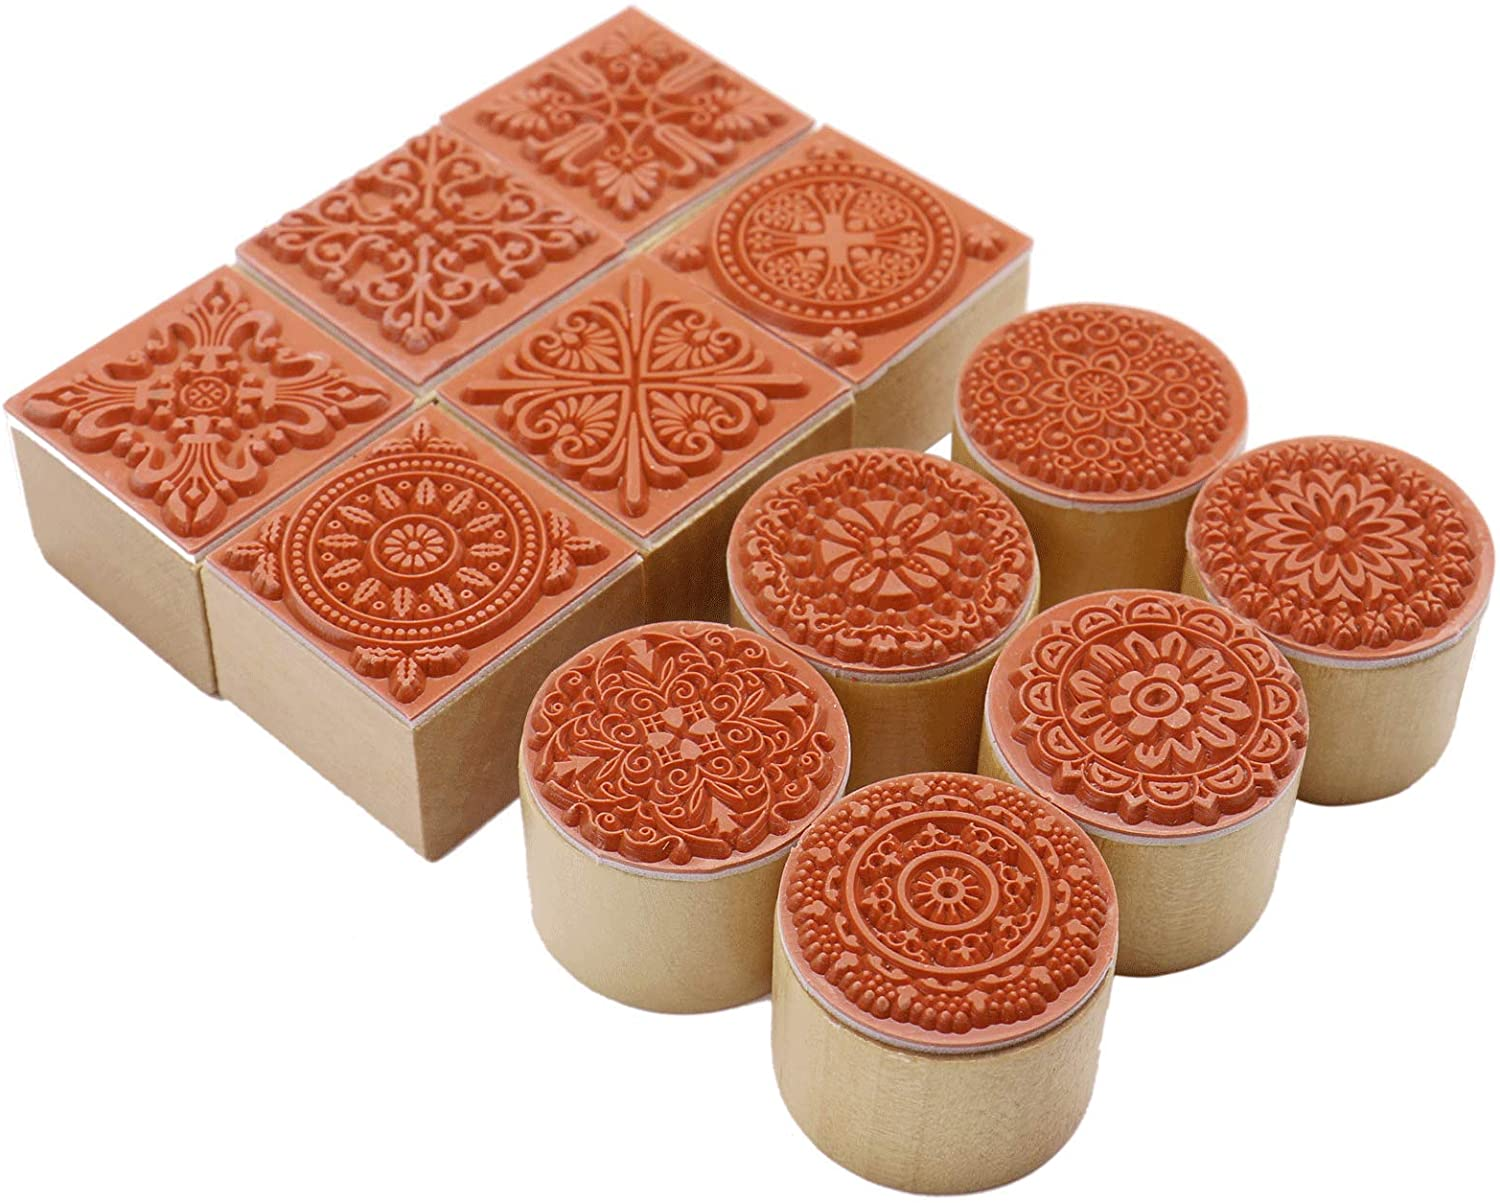 Fciqven 12Pcs Wooden Stamps Floral Pattern Rubber Stamp Round and Square Lace Wooden Rubber Stamp for Scrapbooking and DIY Craft Card